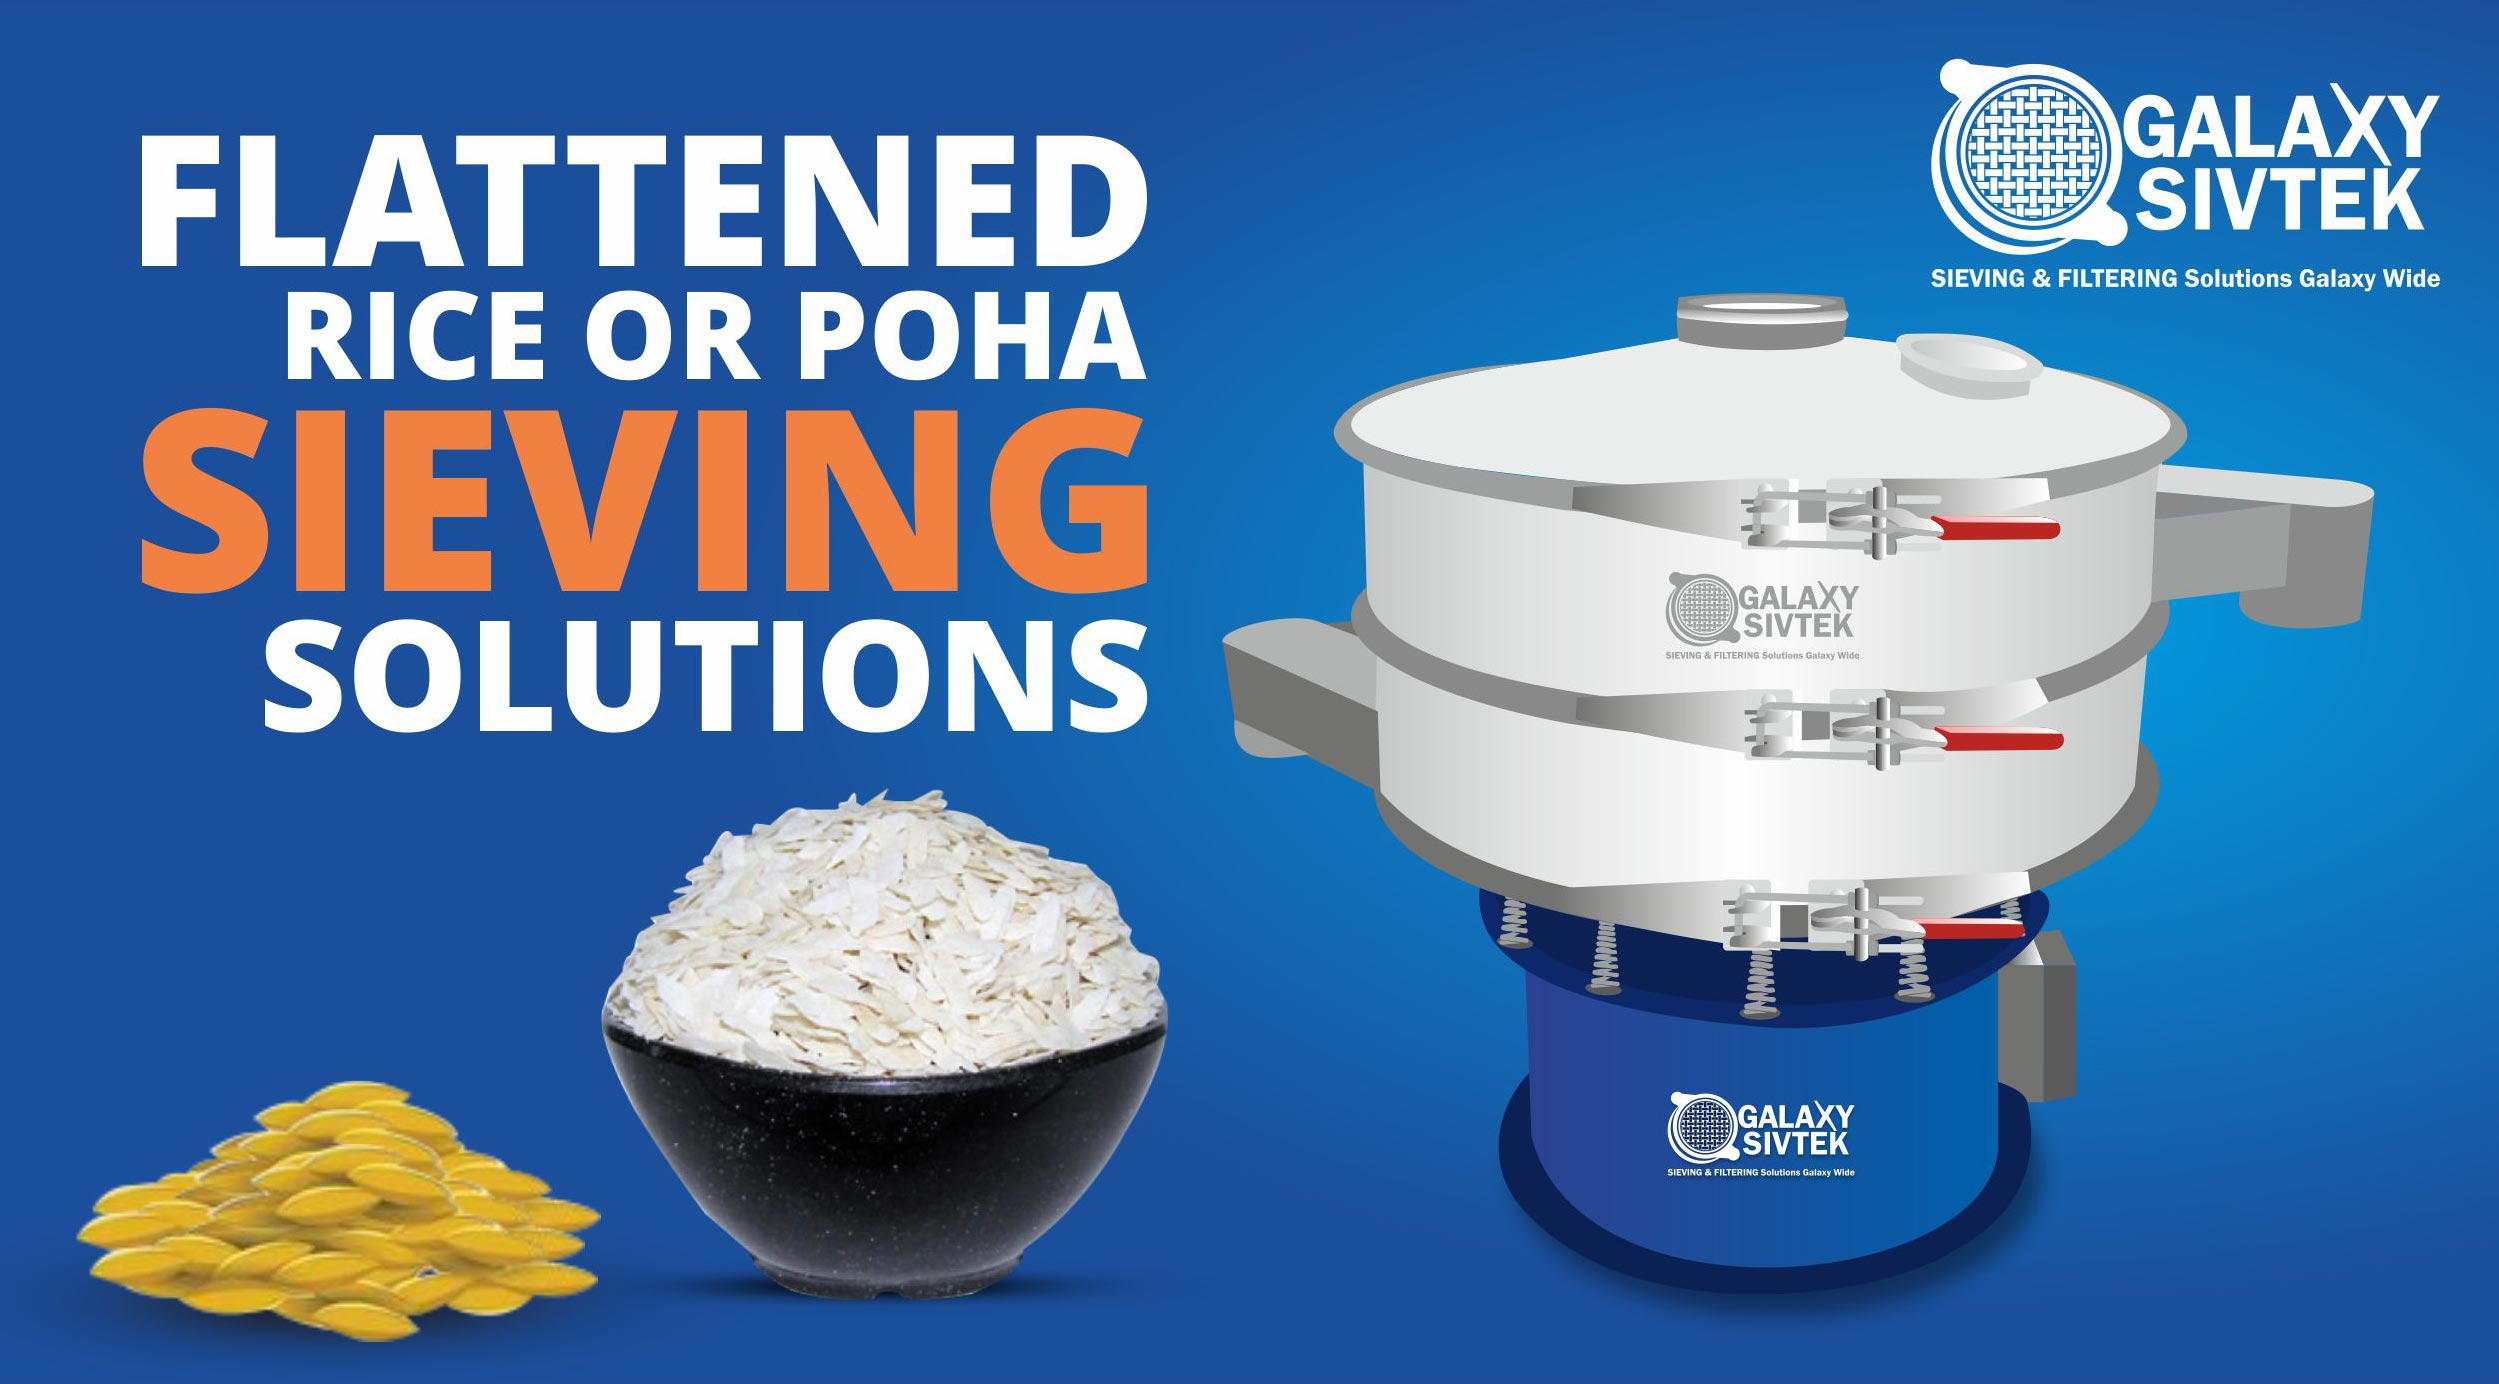 Flattened Rice Sieving Solutions